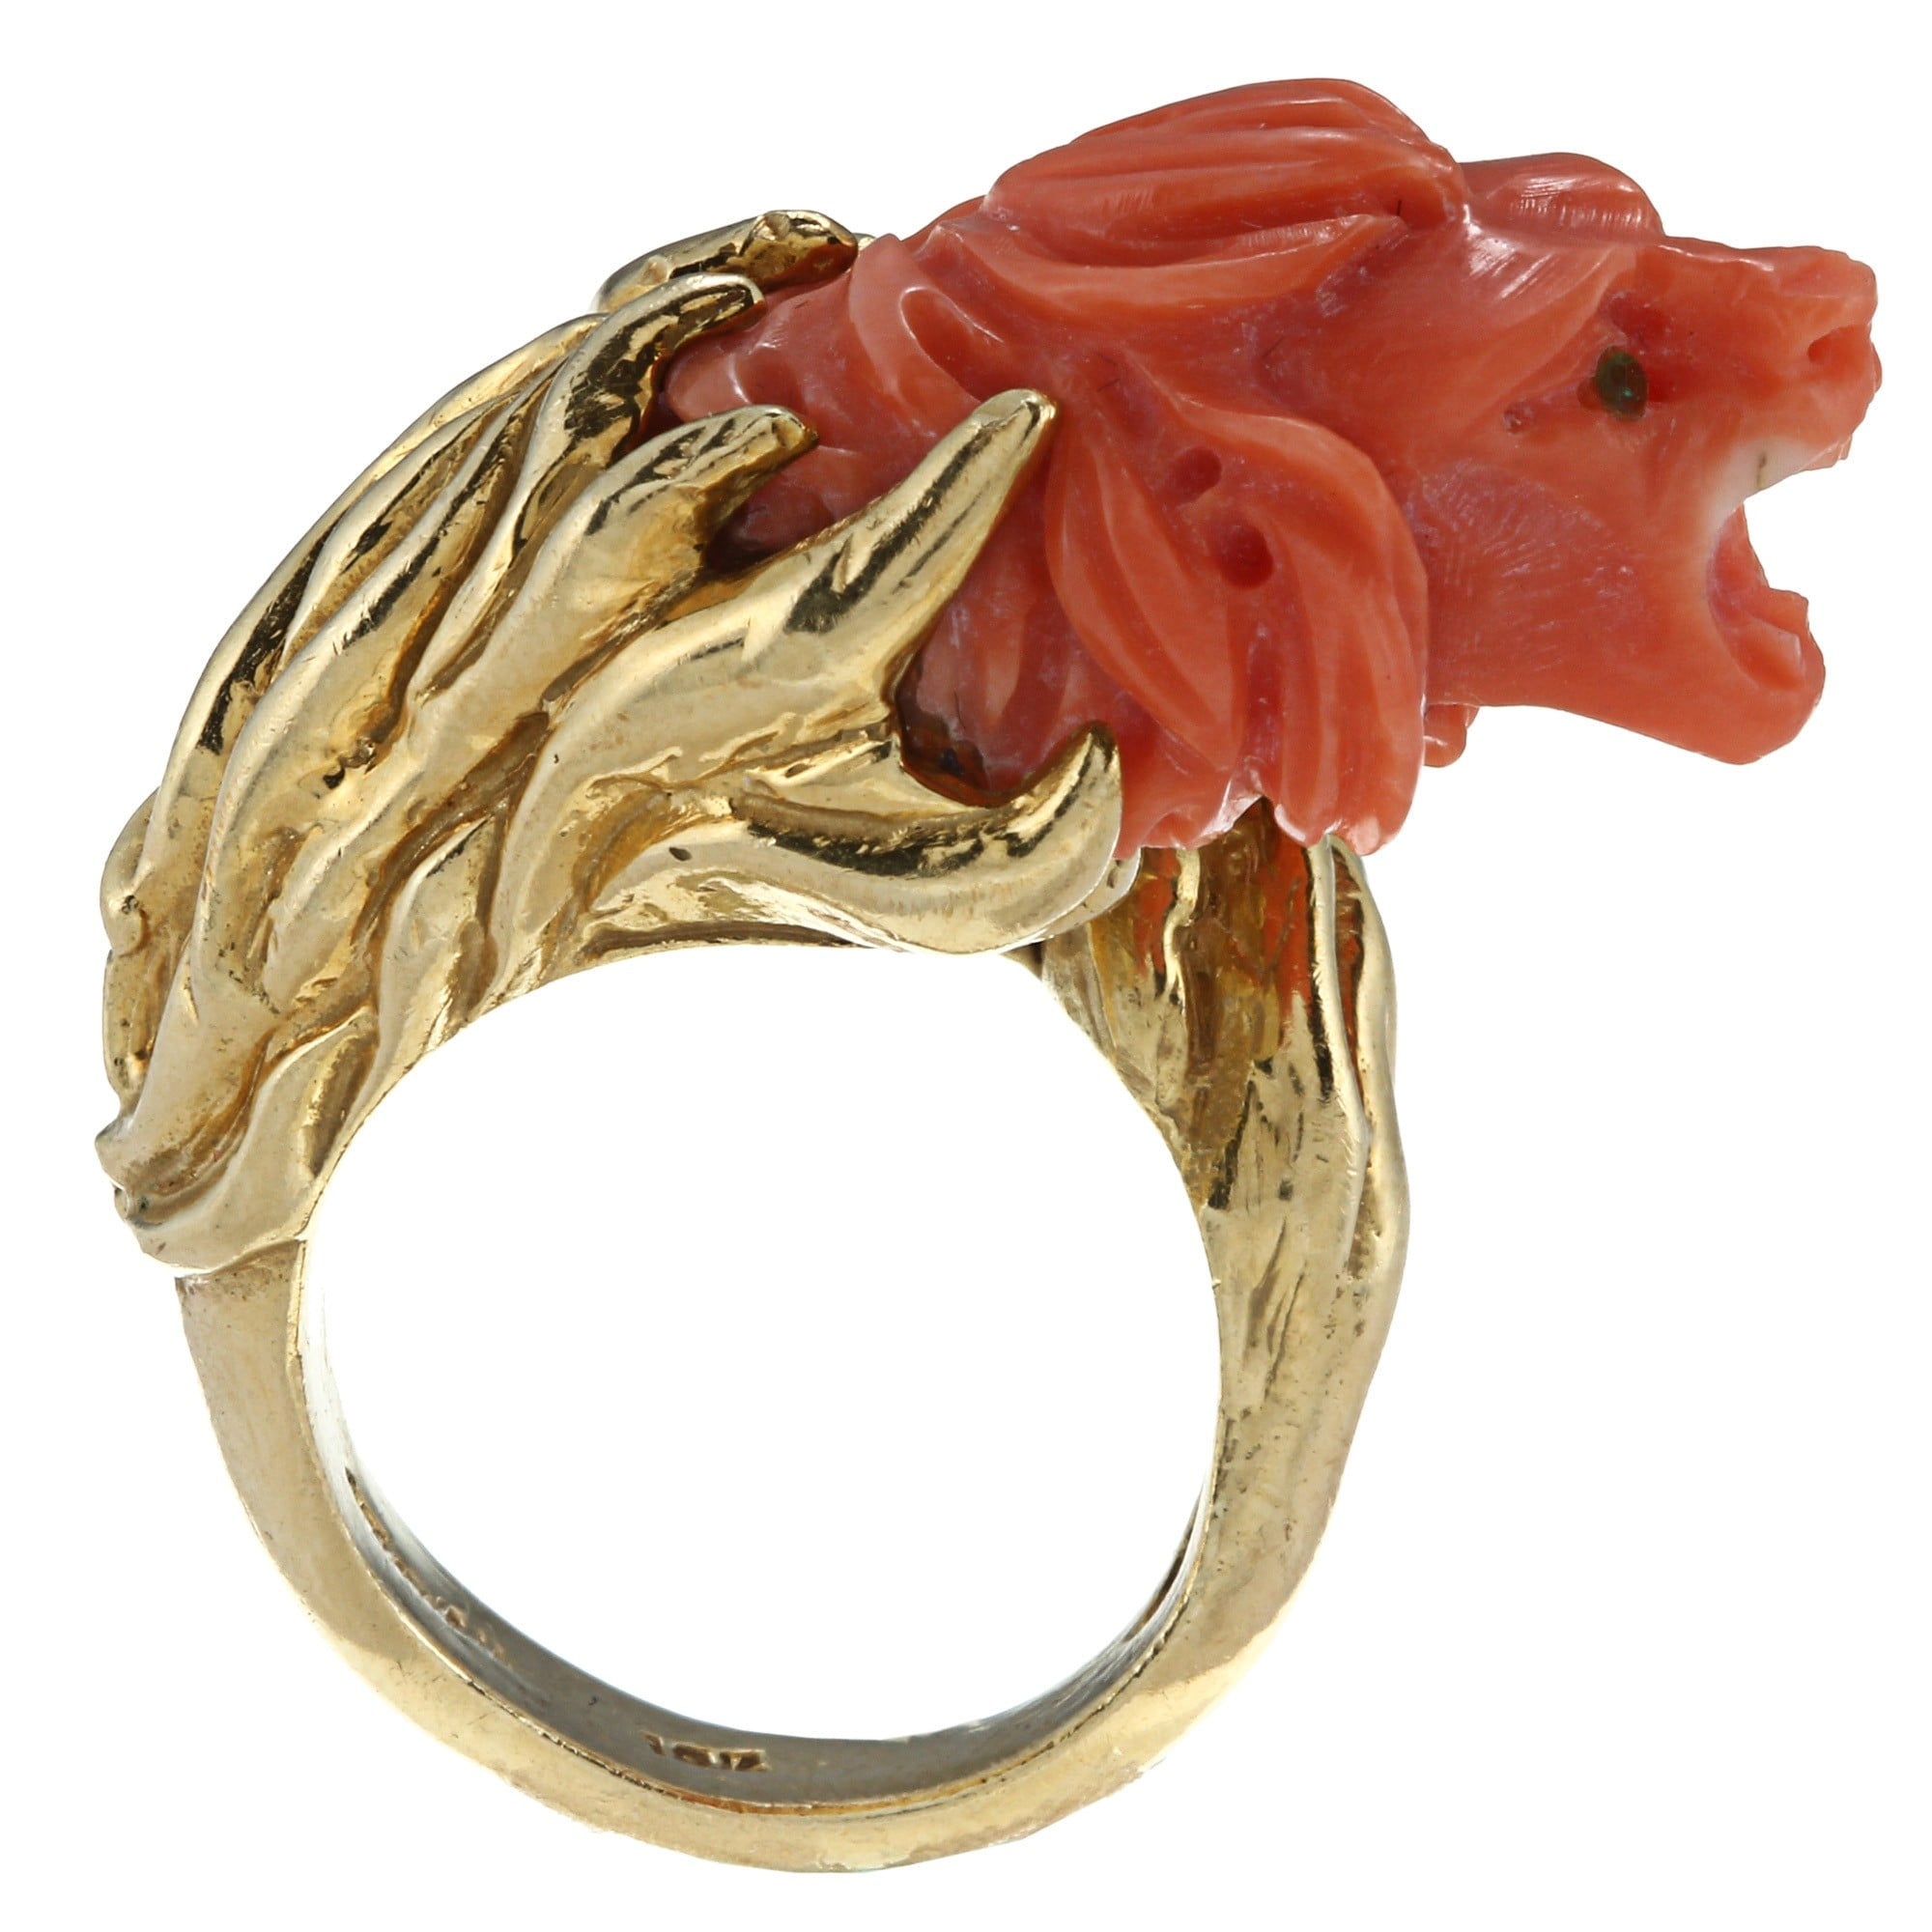 vintage mounting loop in is of img navette diamond ring fine the approx shaped this handmade weight gold price very coral yellow design carat total whimsical rings size